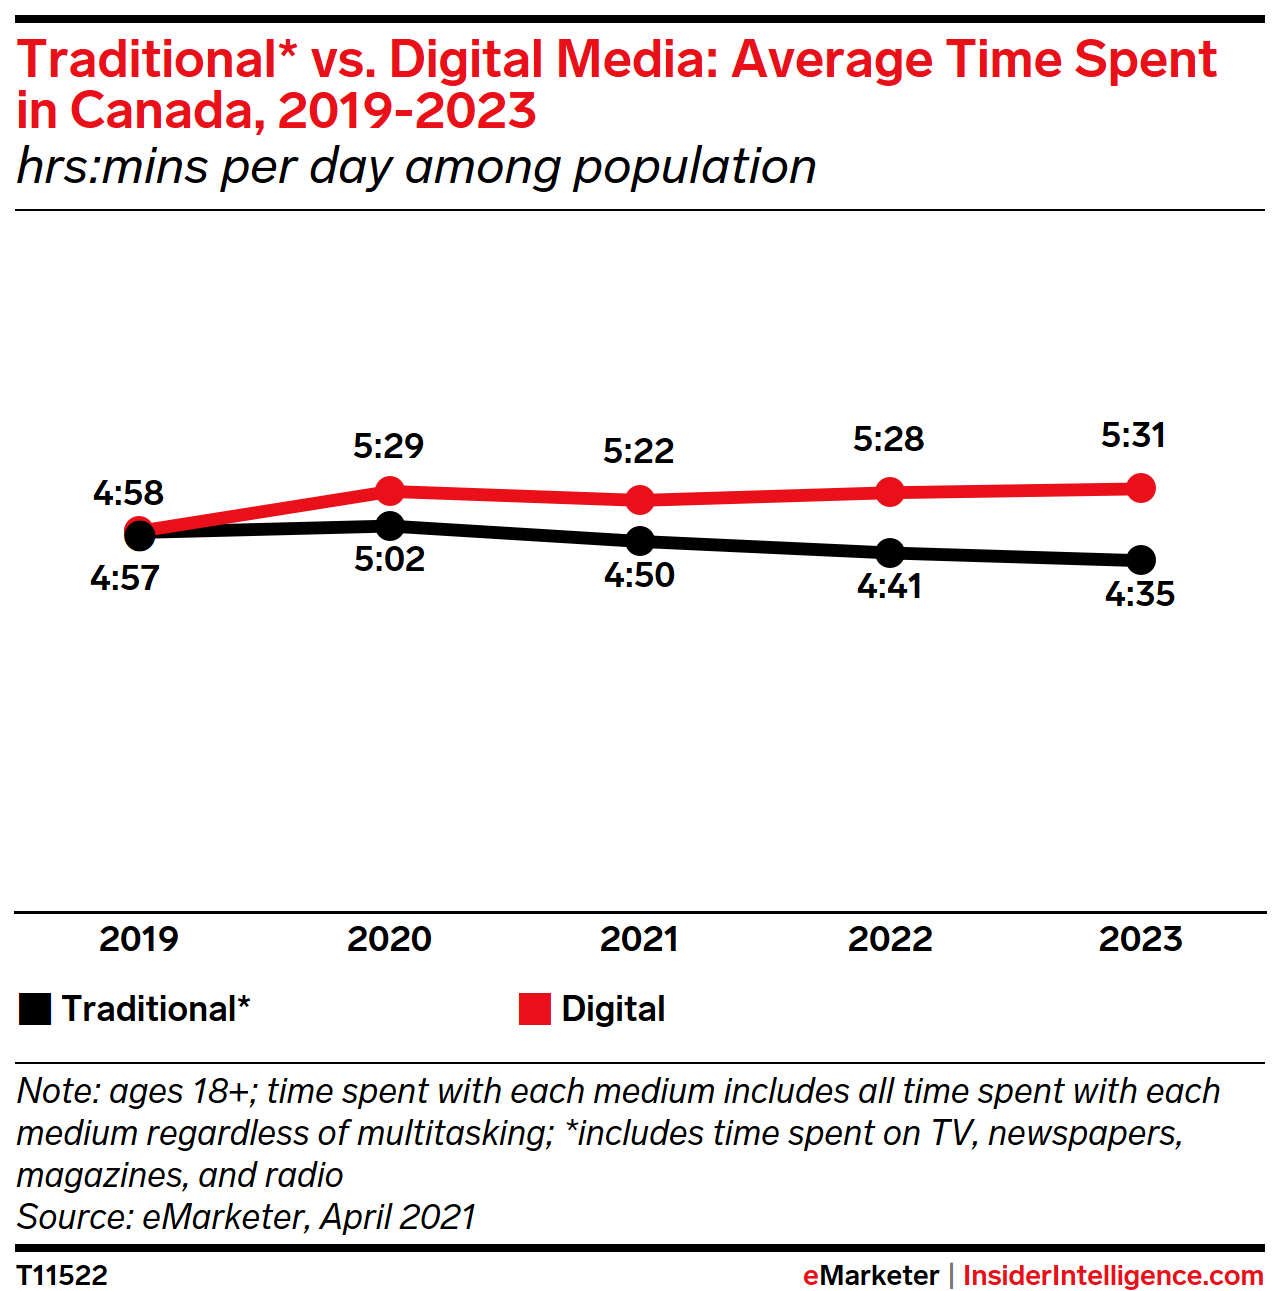 Traditional* vs. Digital Media: Average Time Spent in Canada, 2019-2023 (hrs:mins per day among population)